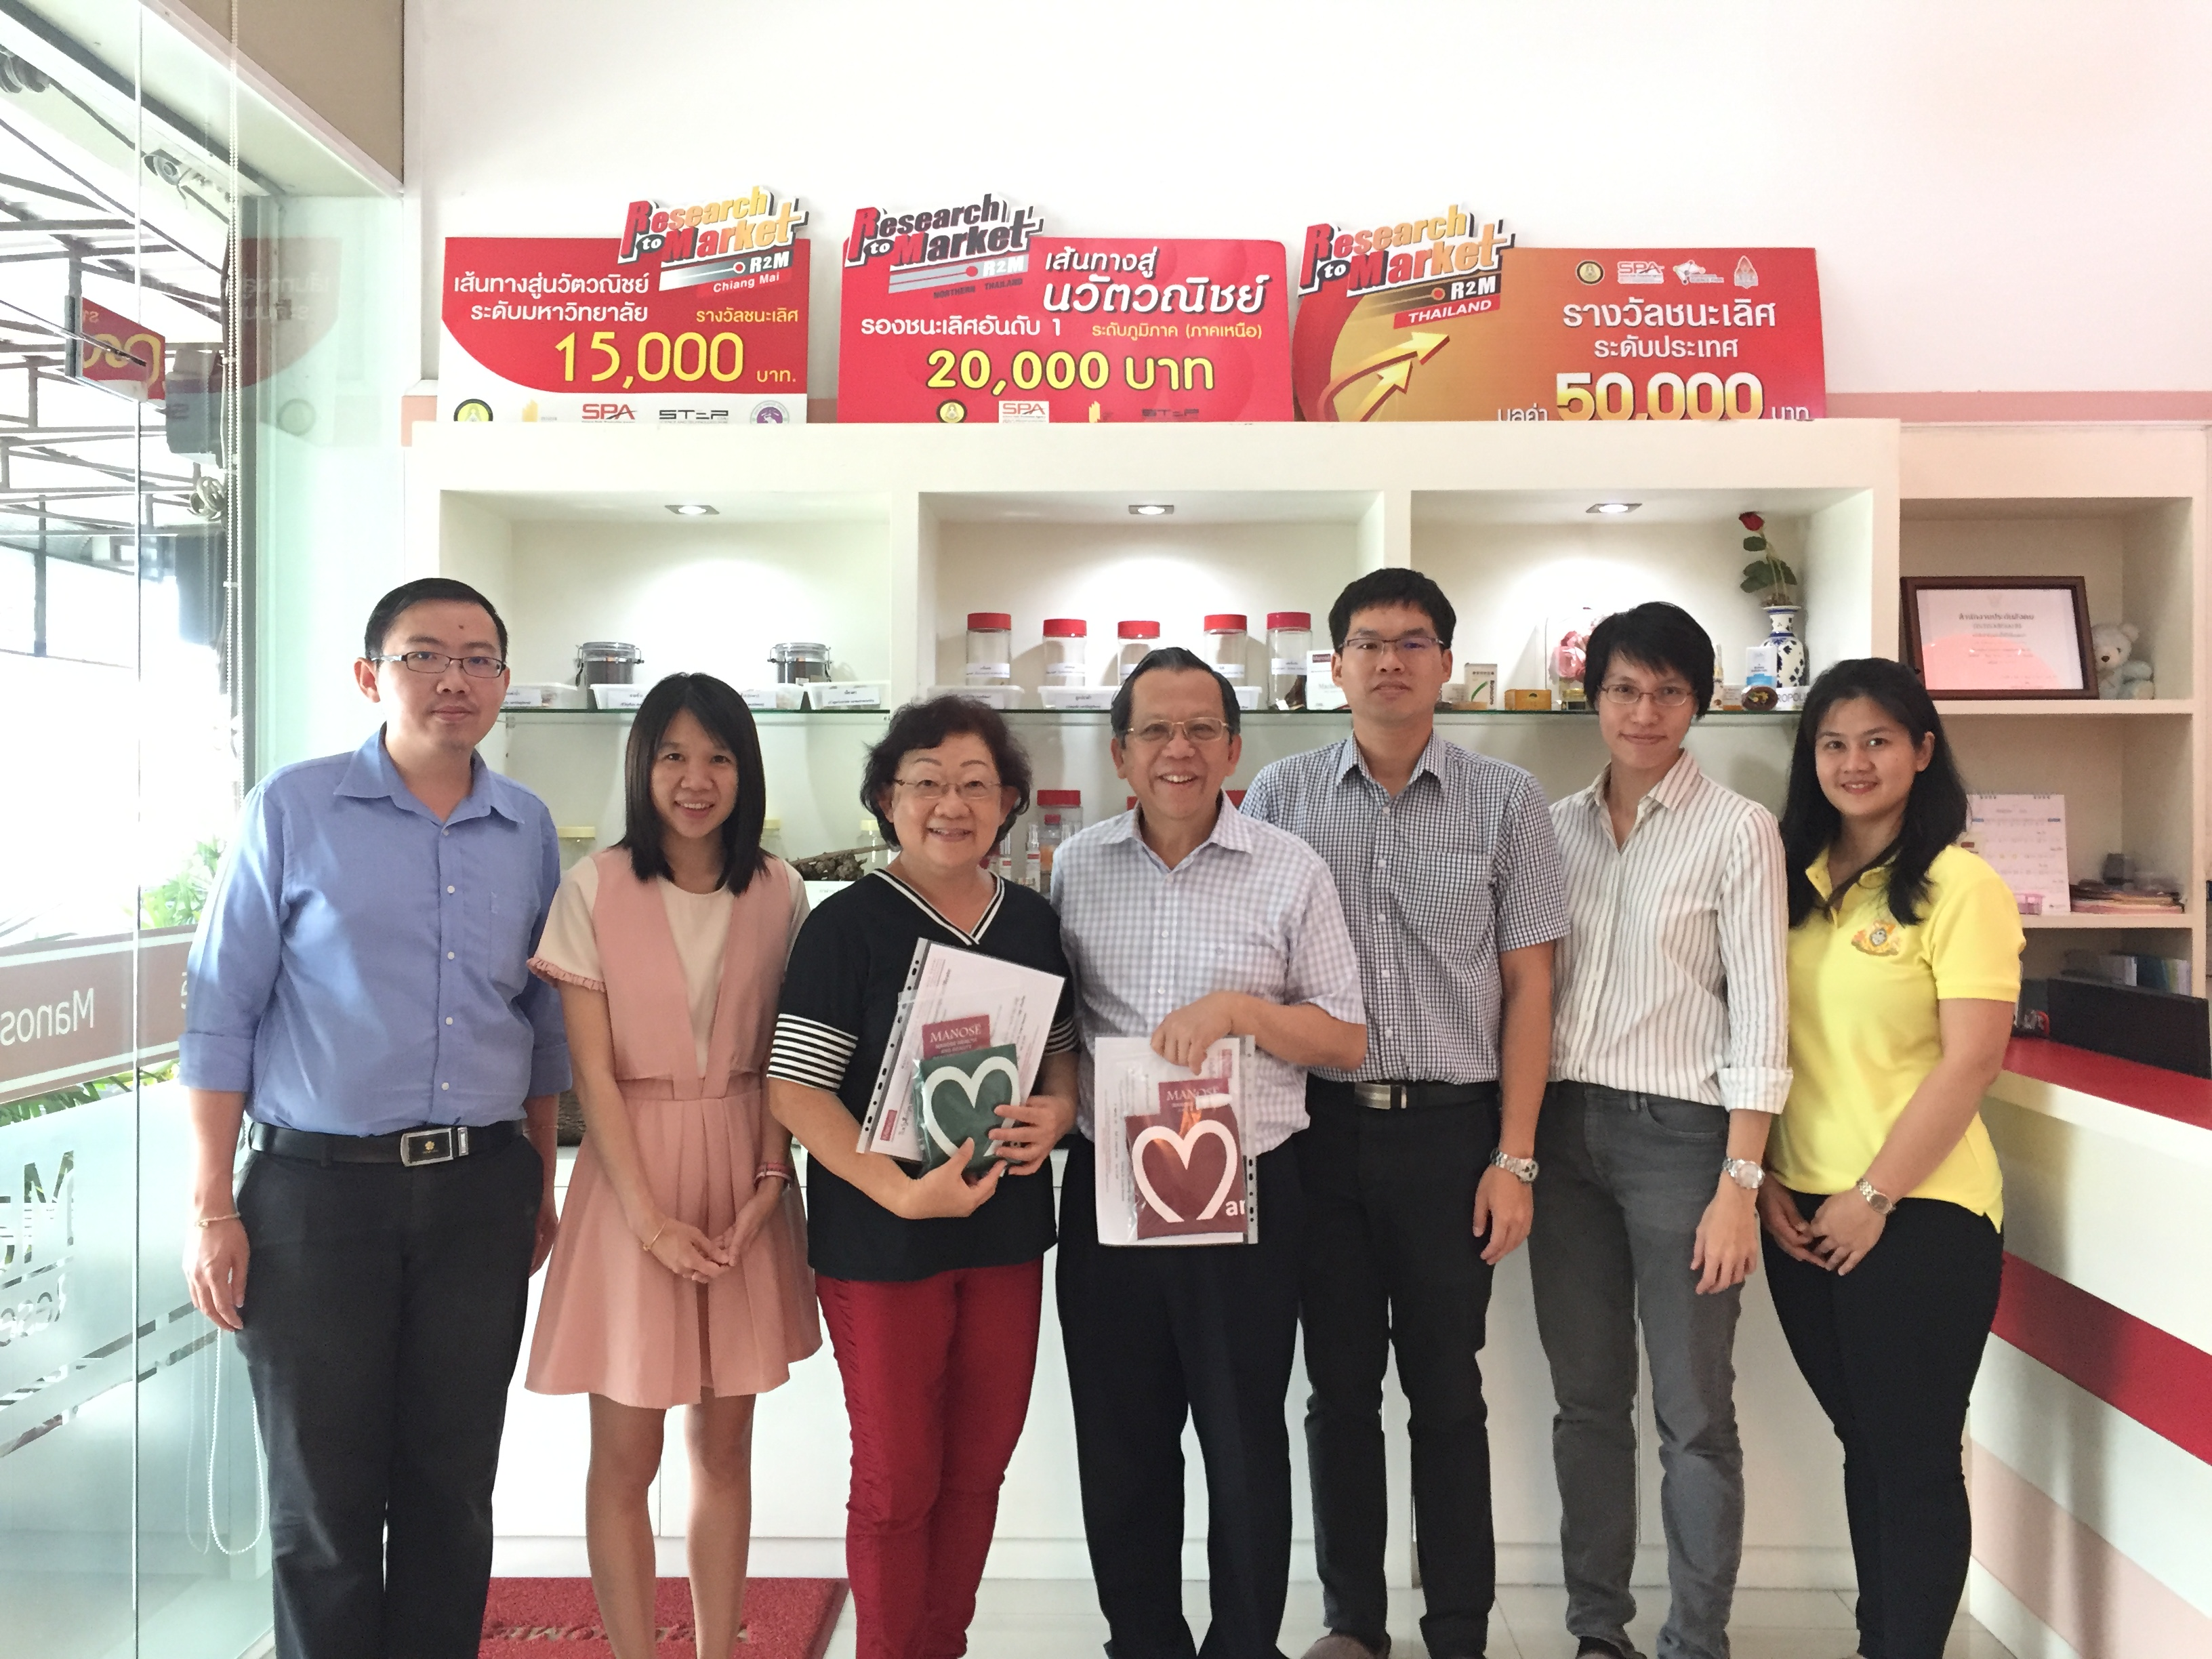 Professor Dr. Paul WS. Heng, Professor of Pharmaceutical Technology from National University of Singapore (NUS) together with his wife, Mrs. Patricia Heng have visited Manose Health and Beauty Research Center